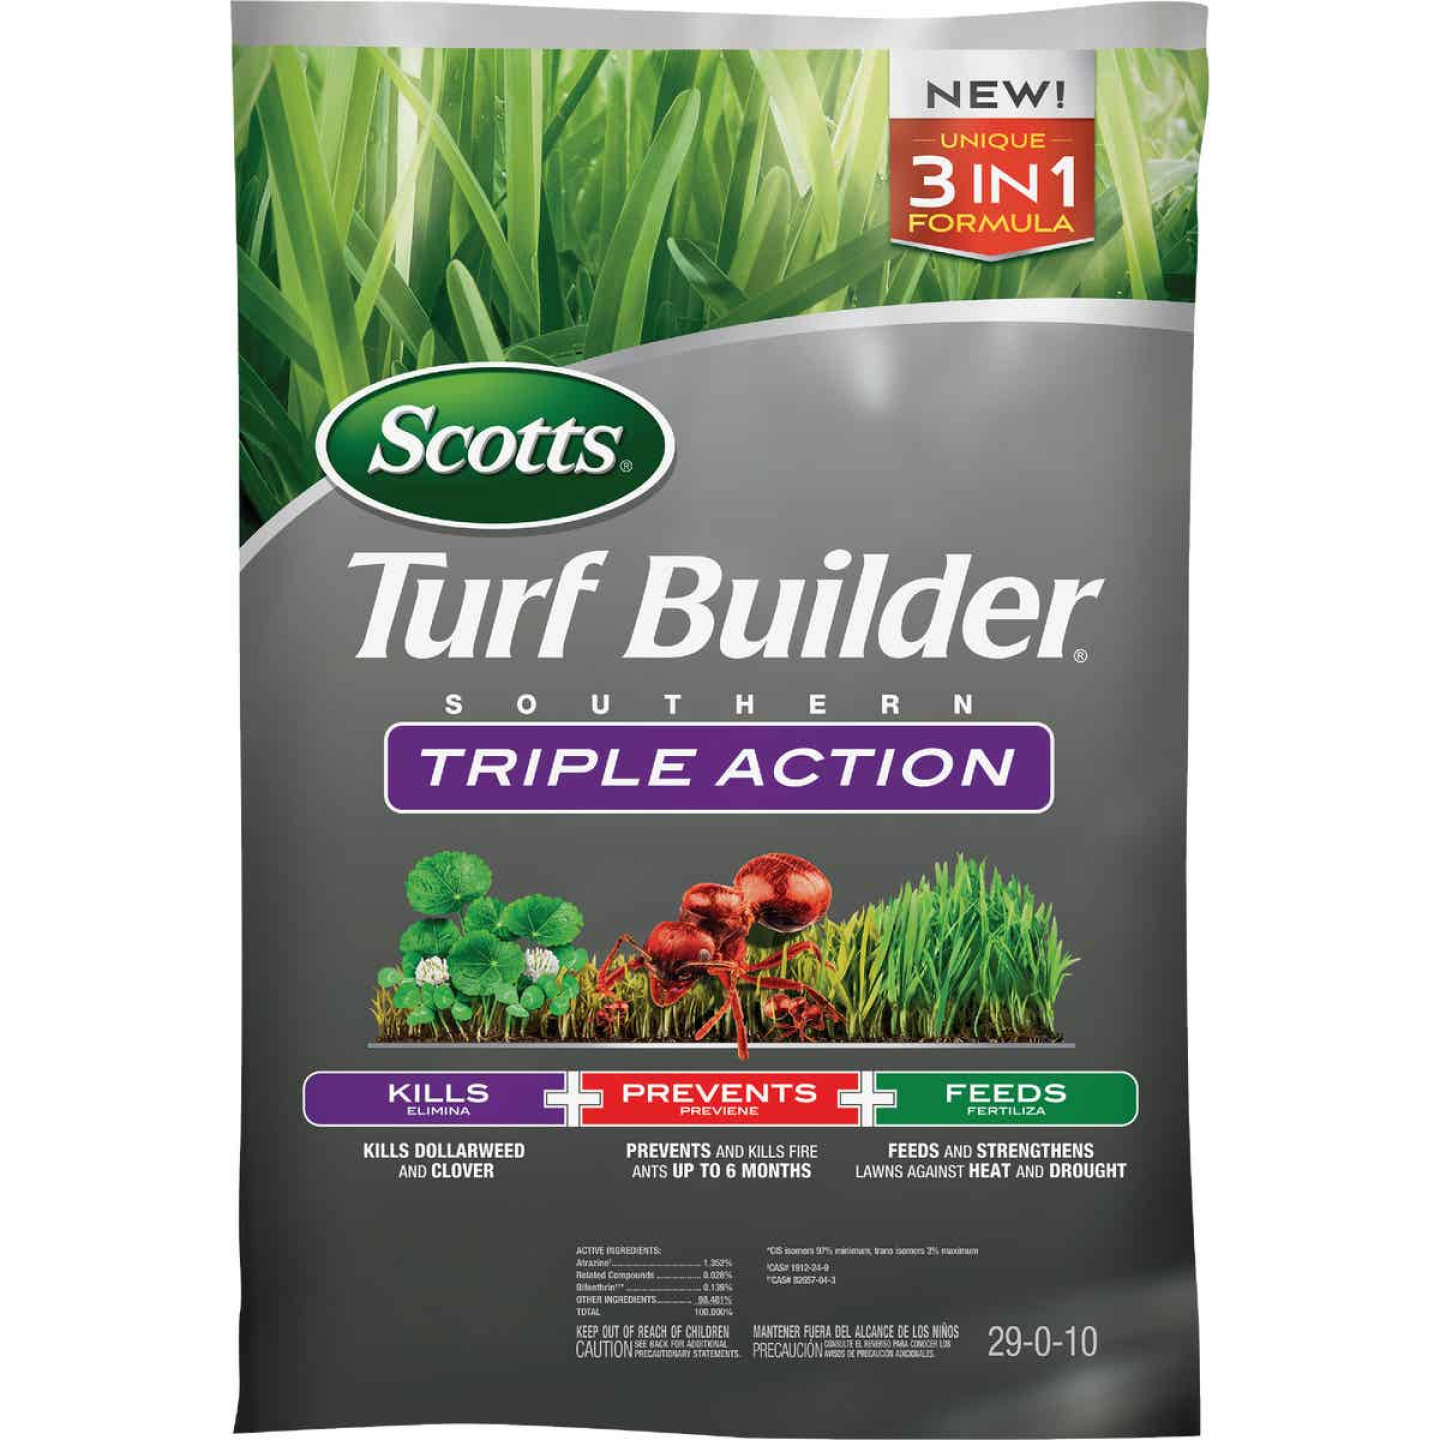 Scotts Turf Builder Southern Triple Action 26.84 Lb. 8000 Sq. Ft. Lawn Fertilizer with Weed Killer Image 1